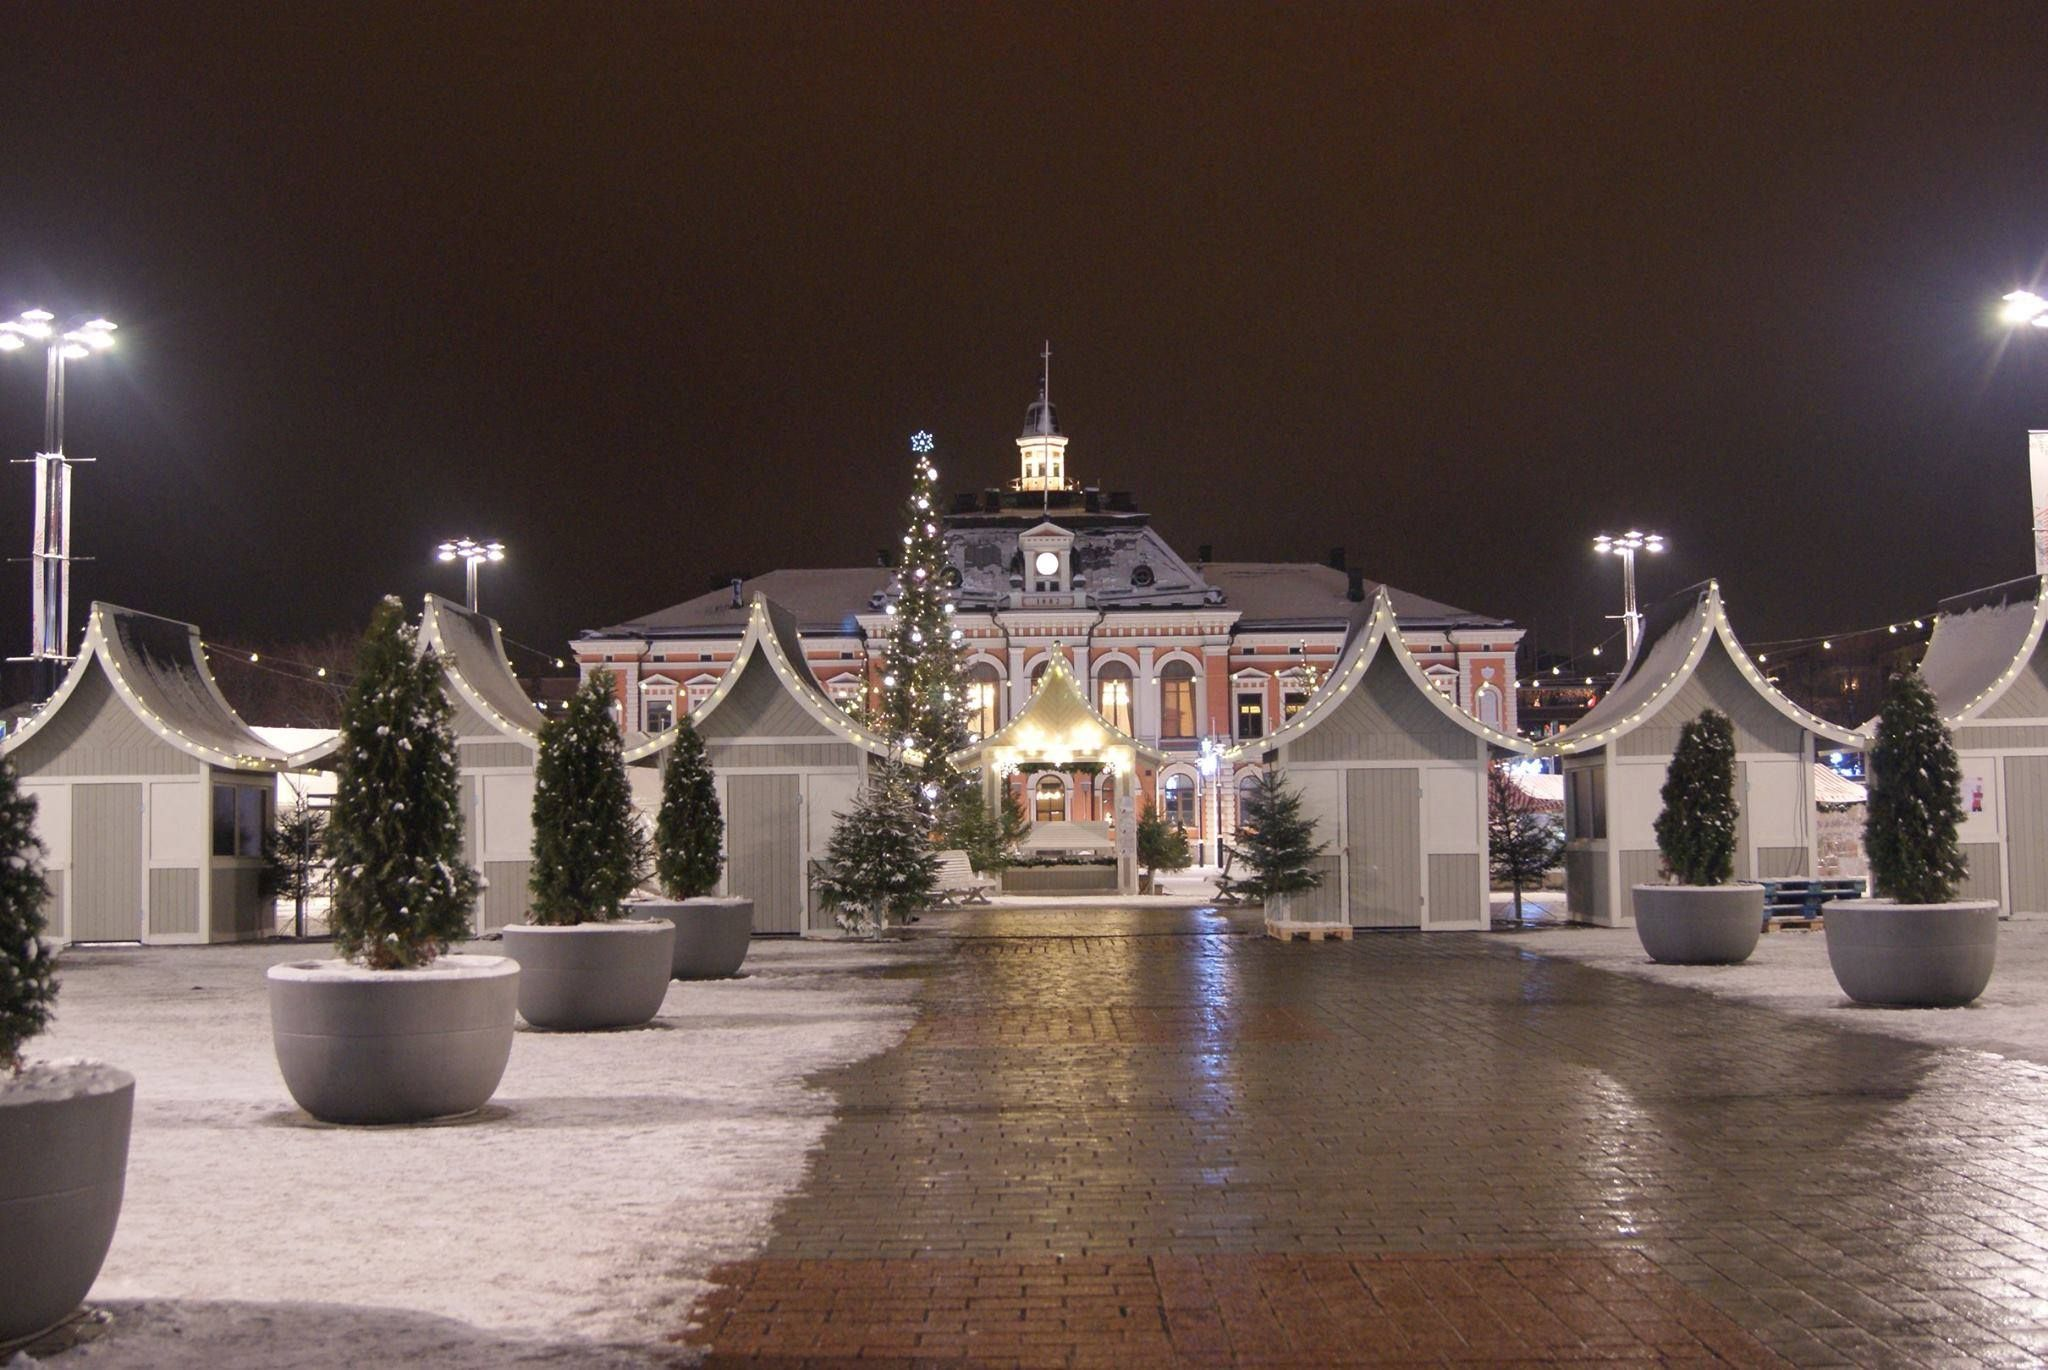 Christmas huts at the Kuopio marketplace and the City hall in the background. Kuopio, Finland 15th December 2014. Photo by Jorma Parviainen.